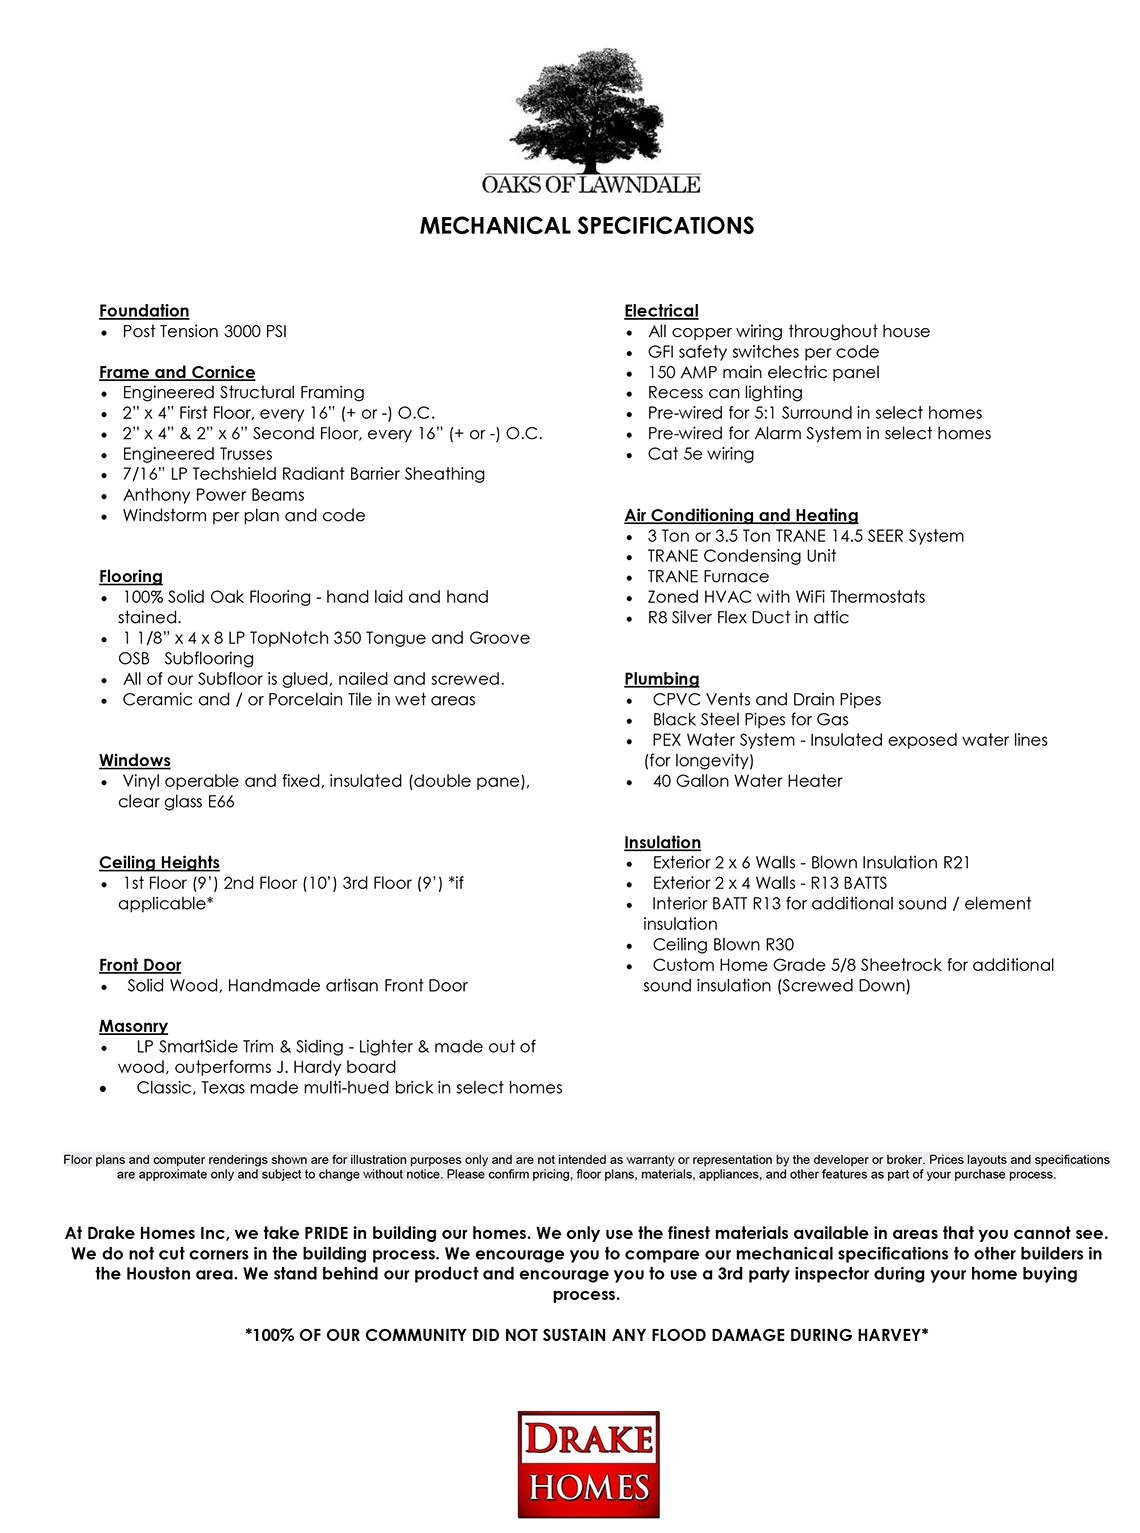 General Mechanical Specifications - Oaks Of Lawndale